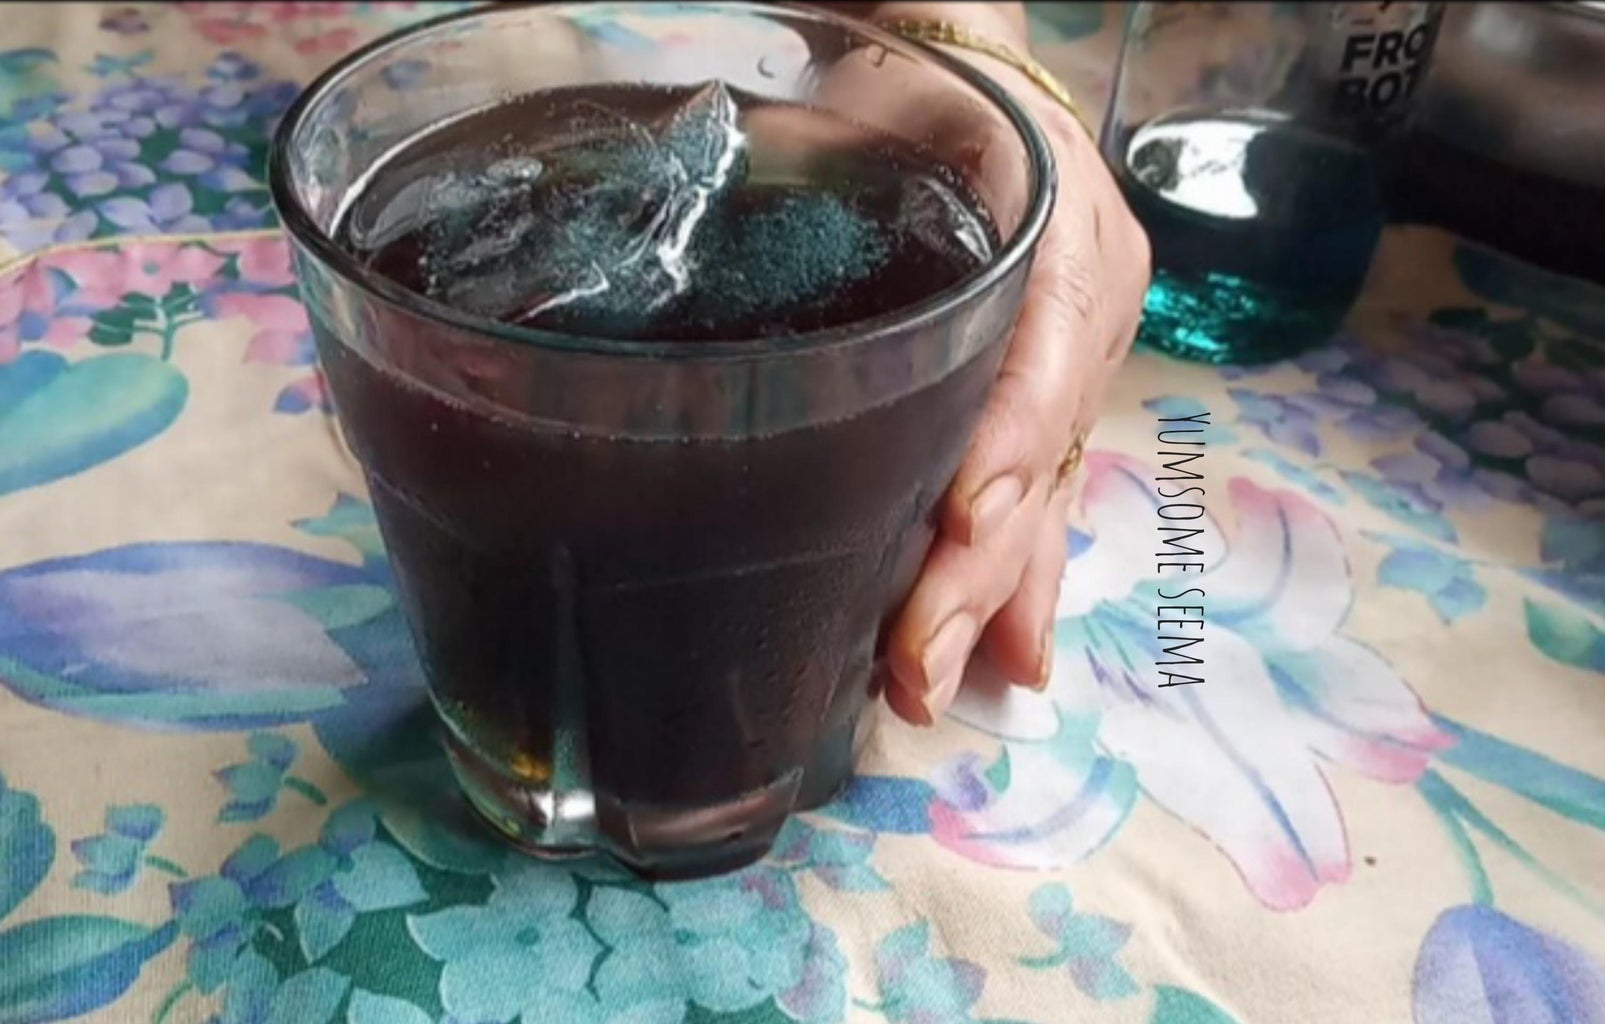 Witchy Drinks From Edible Flowers